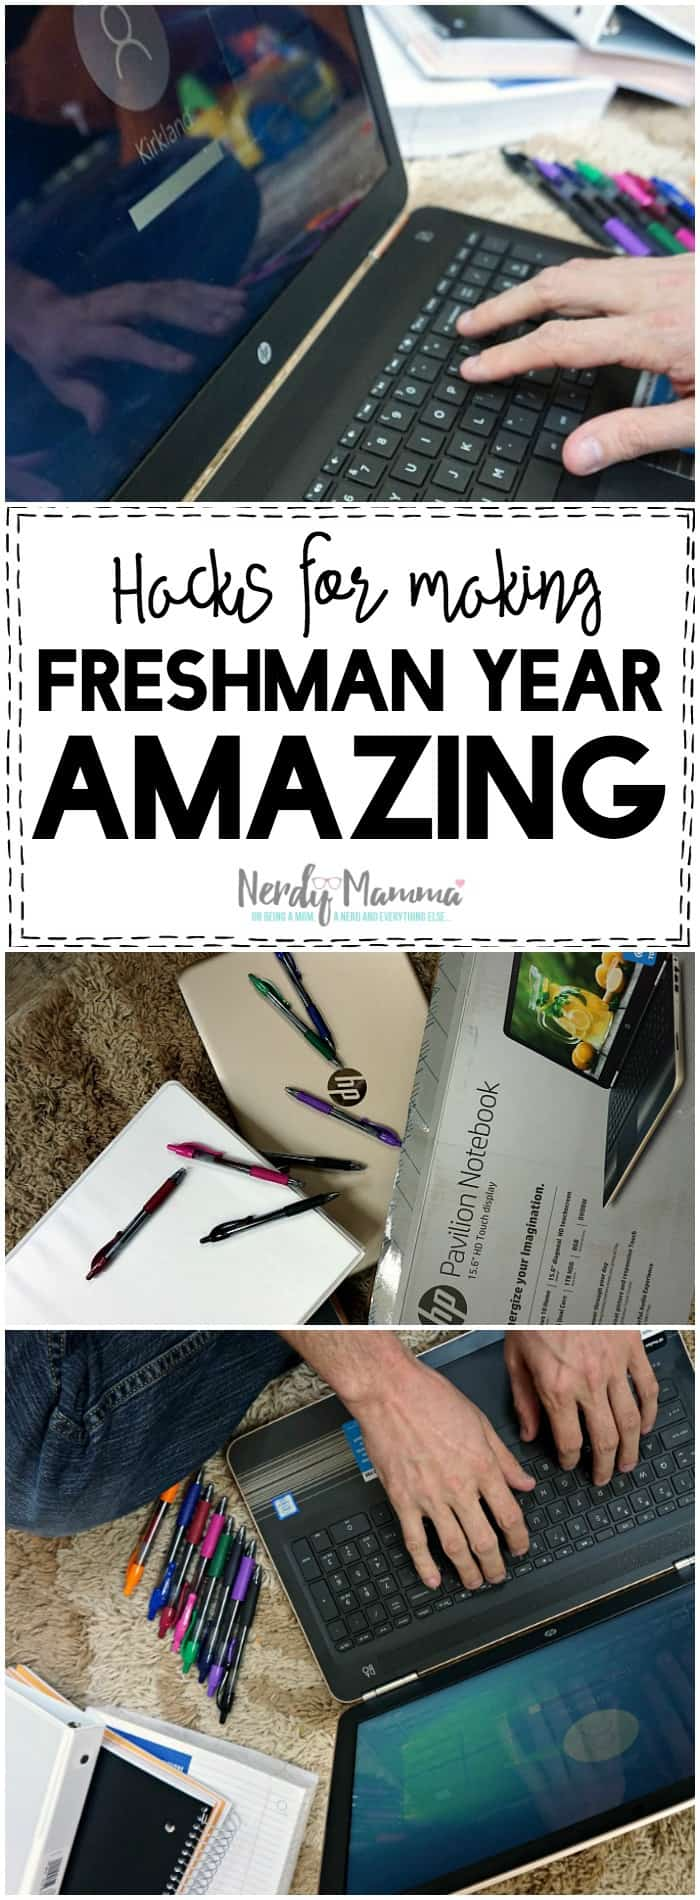 I love these 5 Hacks for Making Freshman Year Amazing. So smart to remind parents what the teens need instead of the other way around.